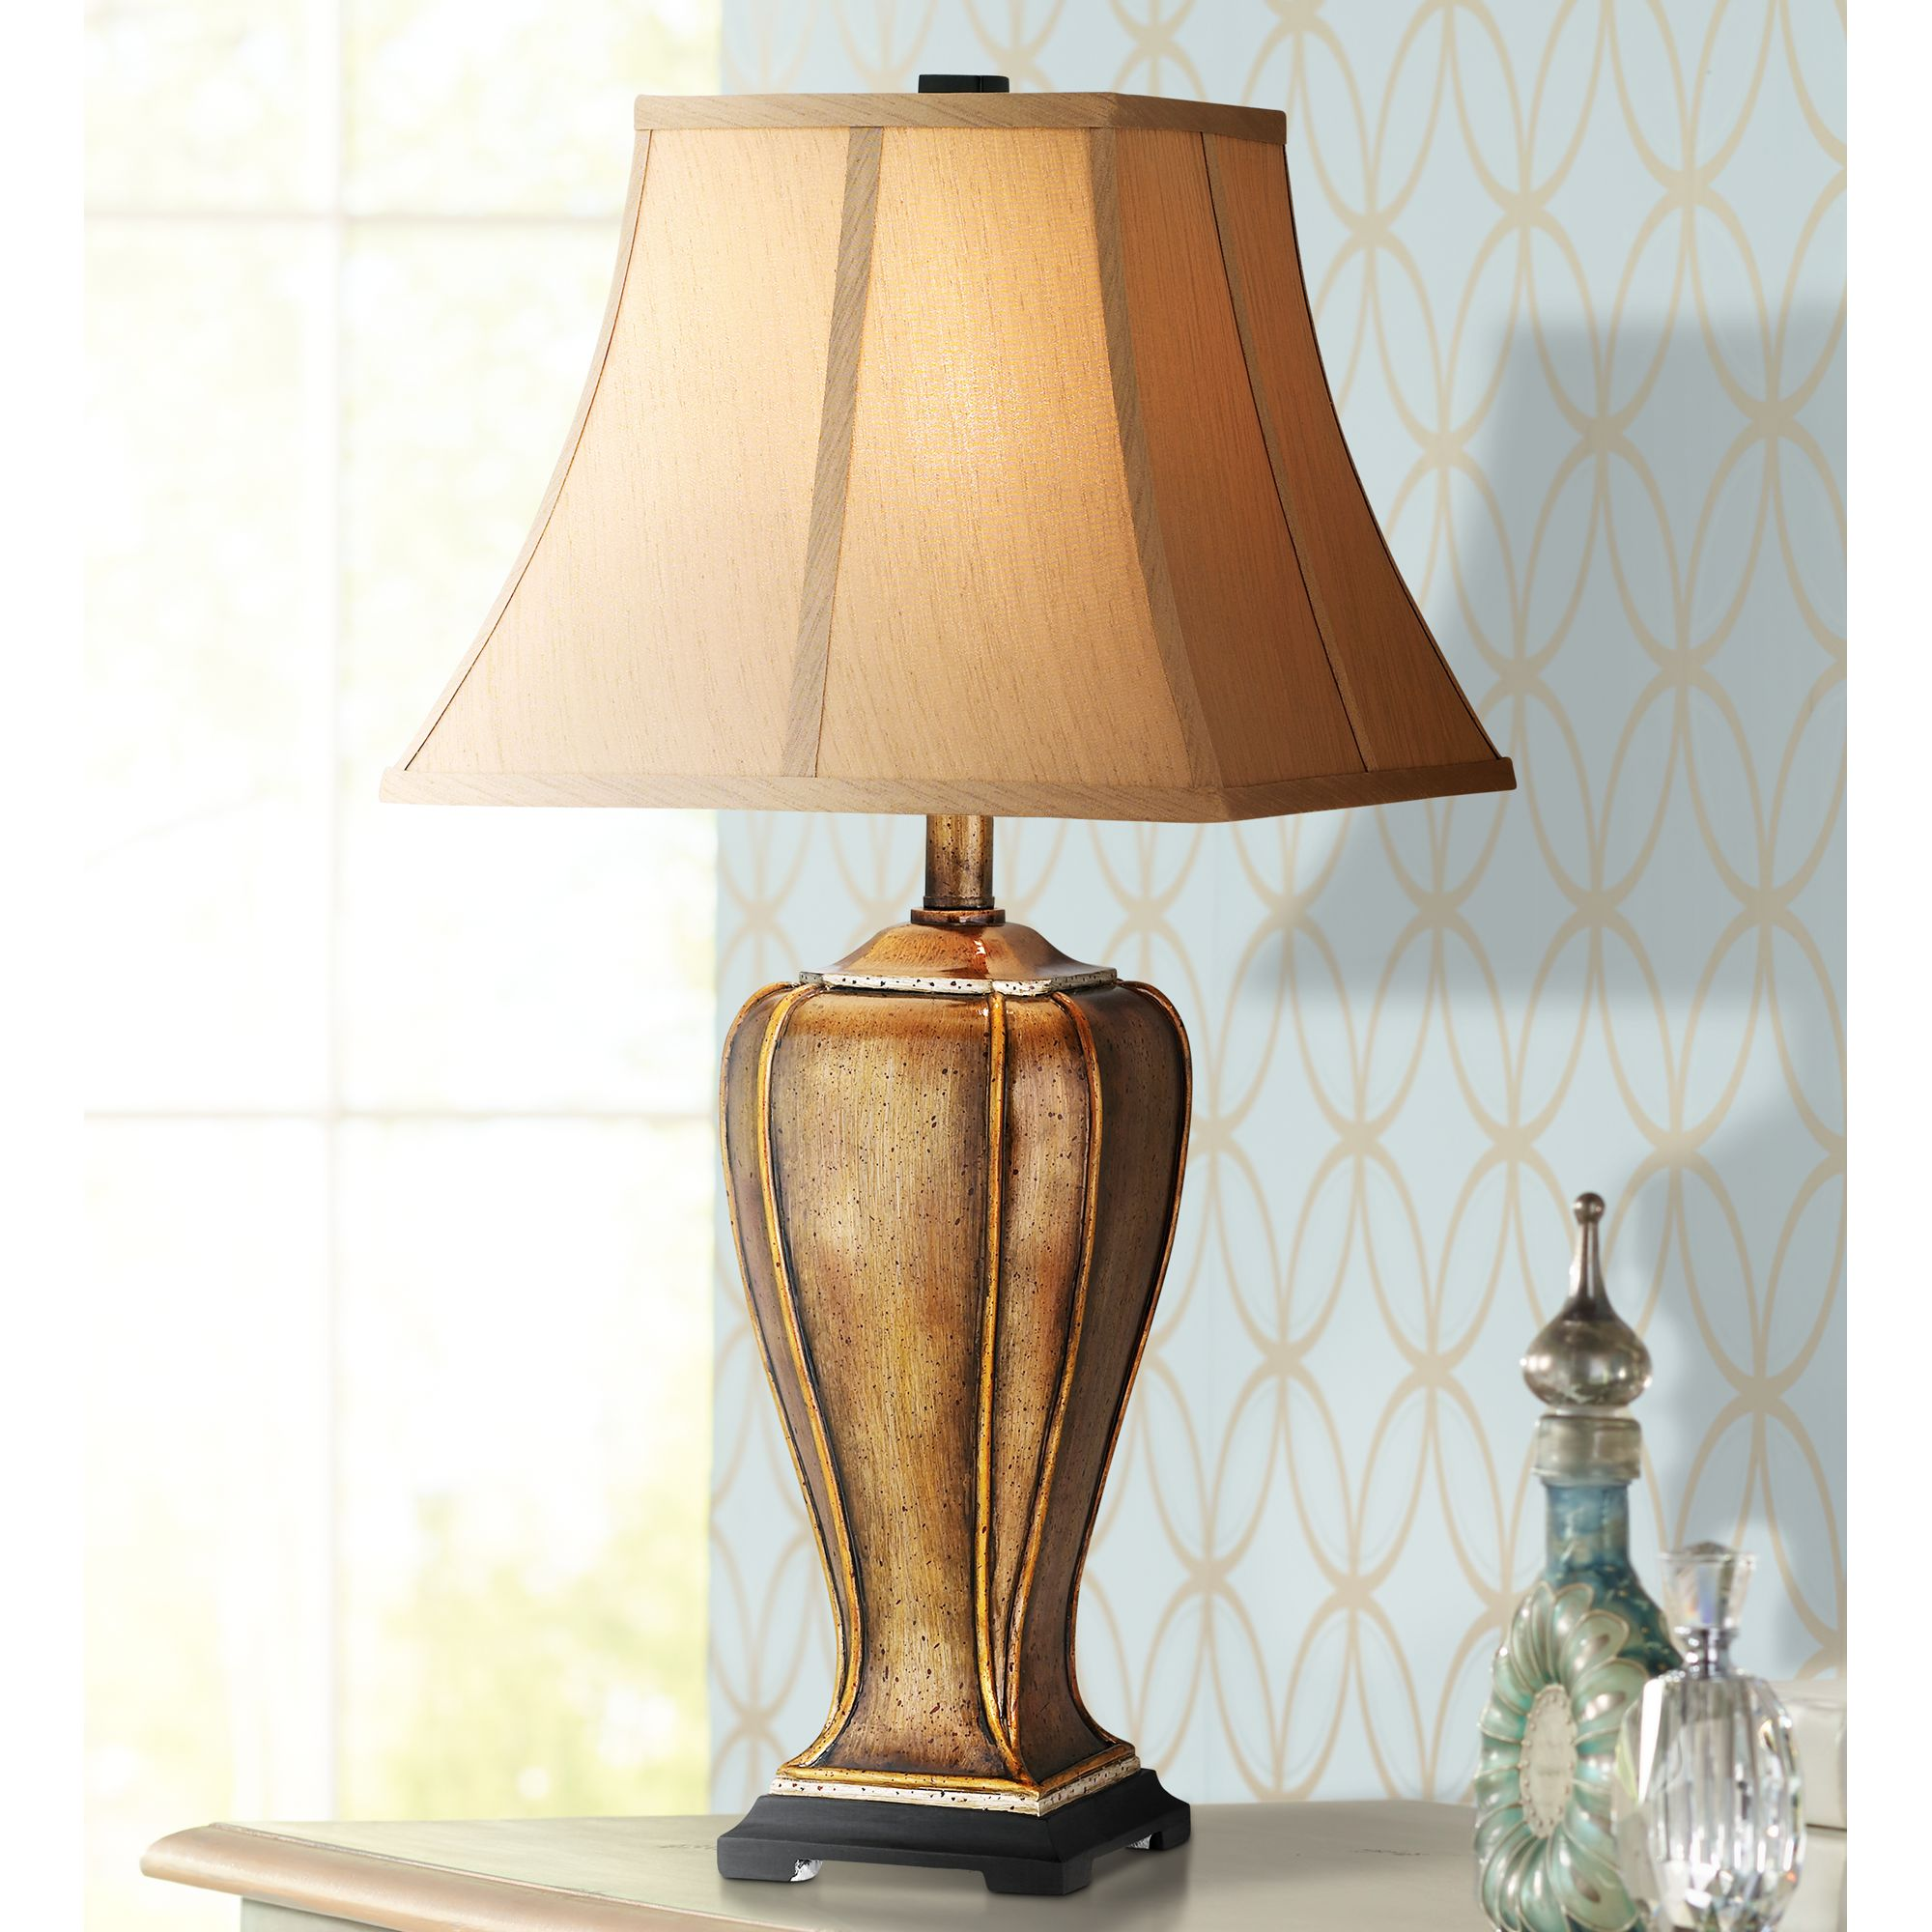 Regency Hill Traditional Table Lamp Hand Painted Copper Vase Faux Silk Square Bell Shade for Living Room Family Bedroom Nightstand